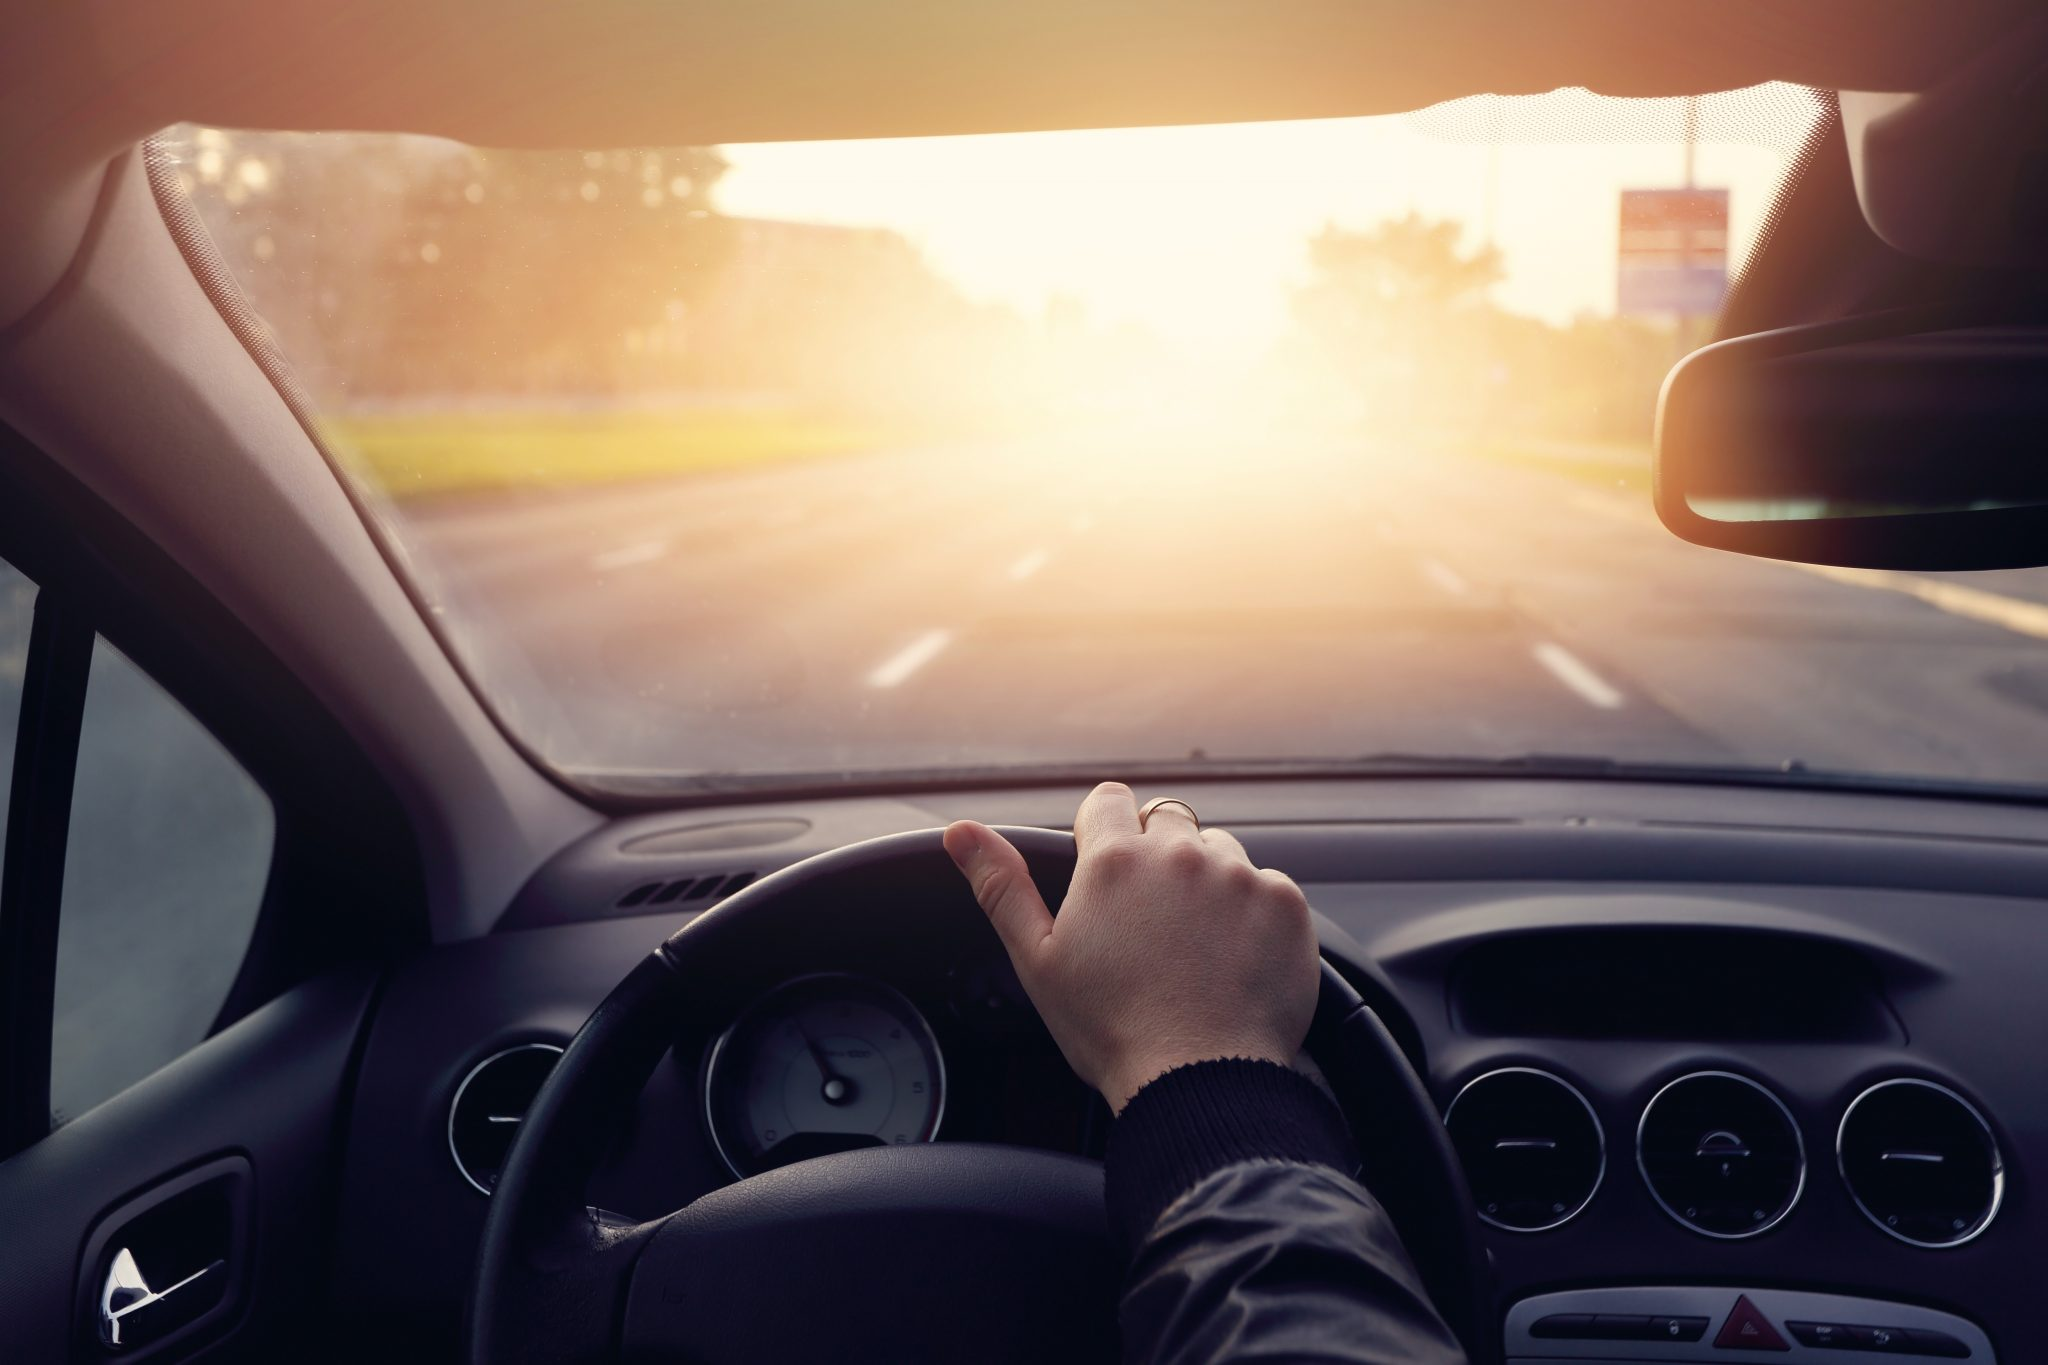 There are five benefits of window tints that protect you and your vehicle from sun damage, shattered glass, and more.